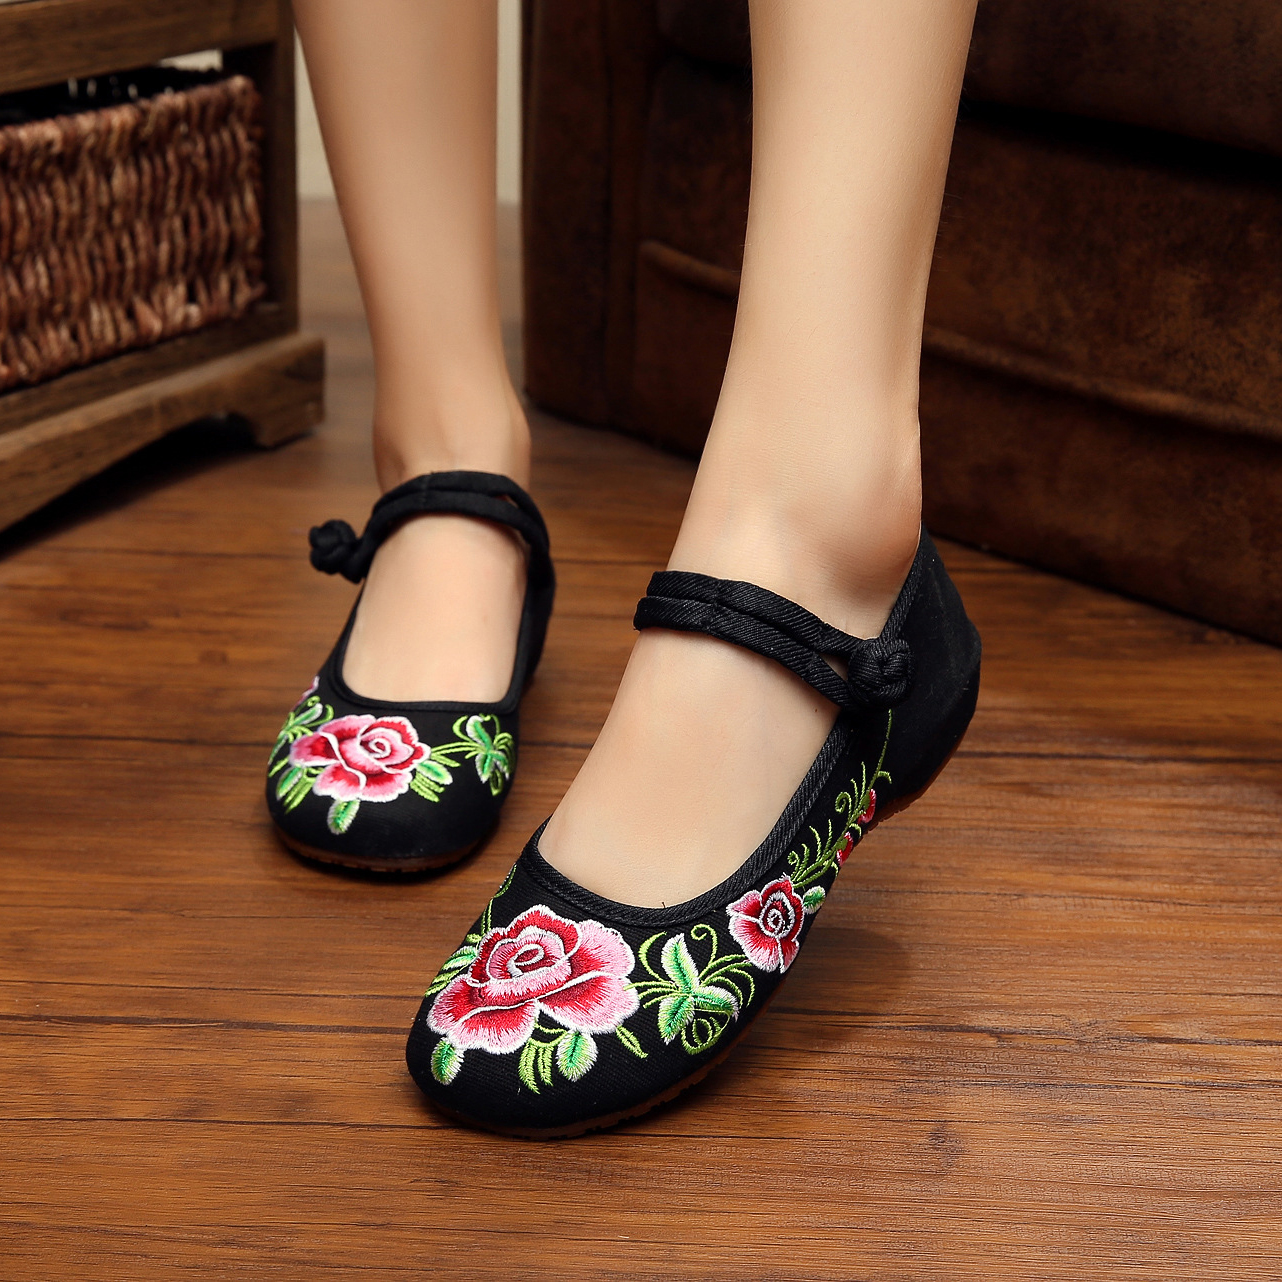 New Spring delicate fashion flowers embroidery ladies travel flats shoes oxford shoes for women sapato feminino chaussure femme<br><br>Aliexpress